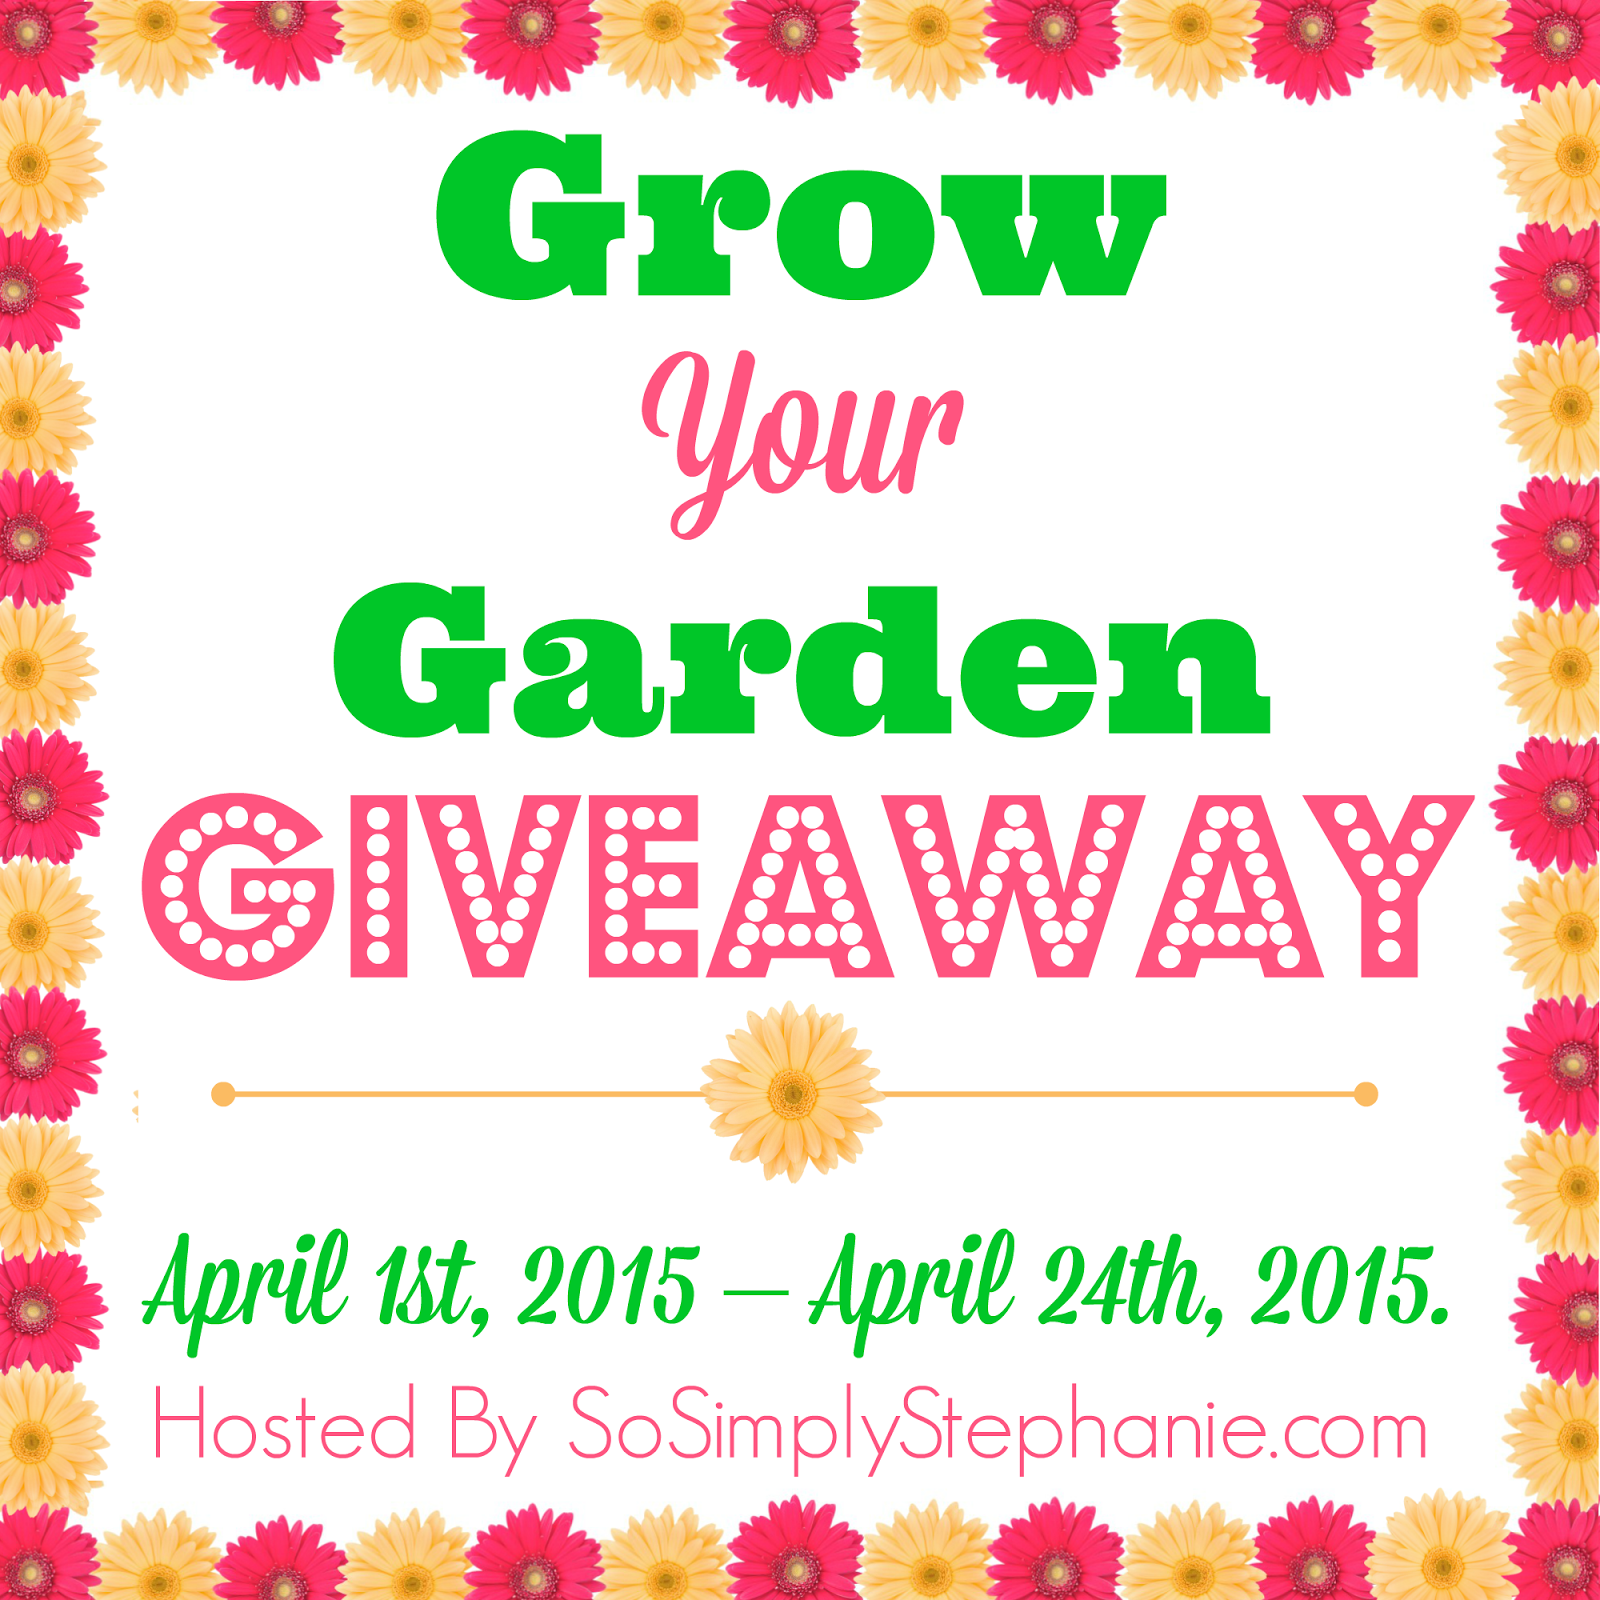 Sign up for the Grow Your Garden Blogger Opp. Event starts 4/1/15